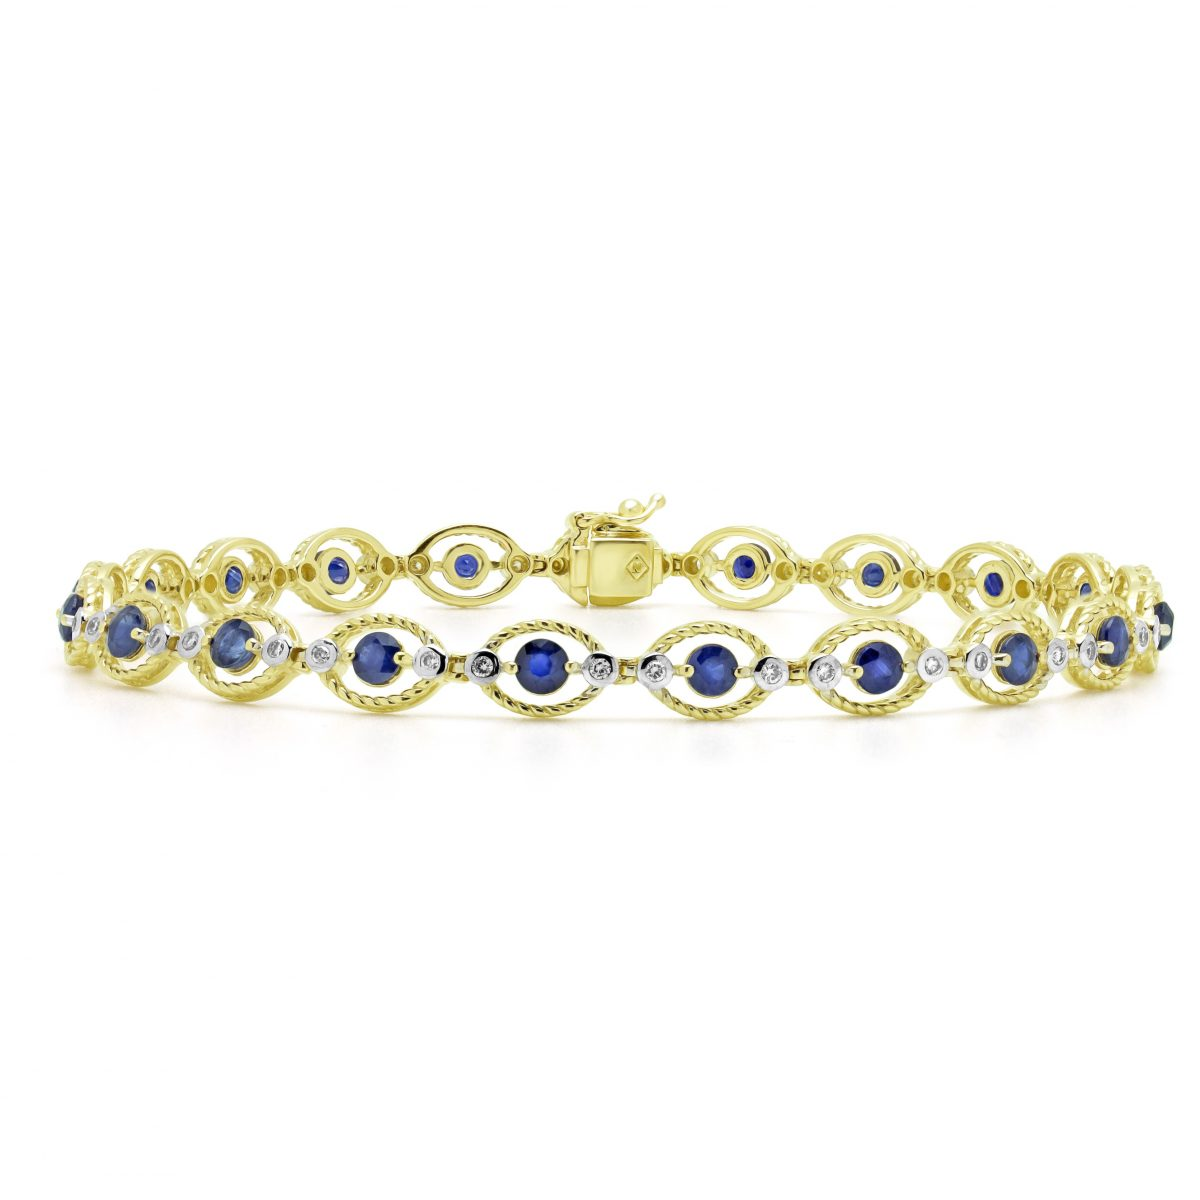 gemstone designer silver shop jewelry yurman gold bracelet sterling david multi